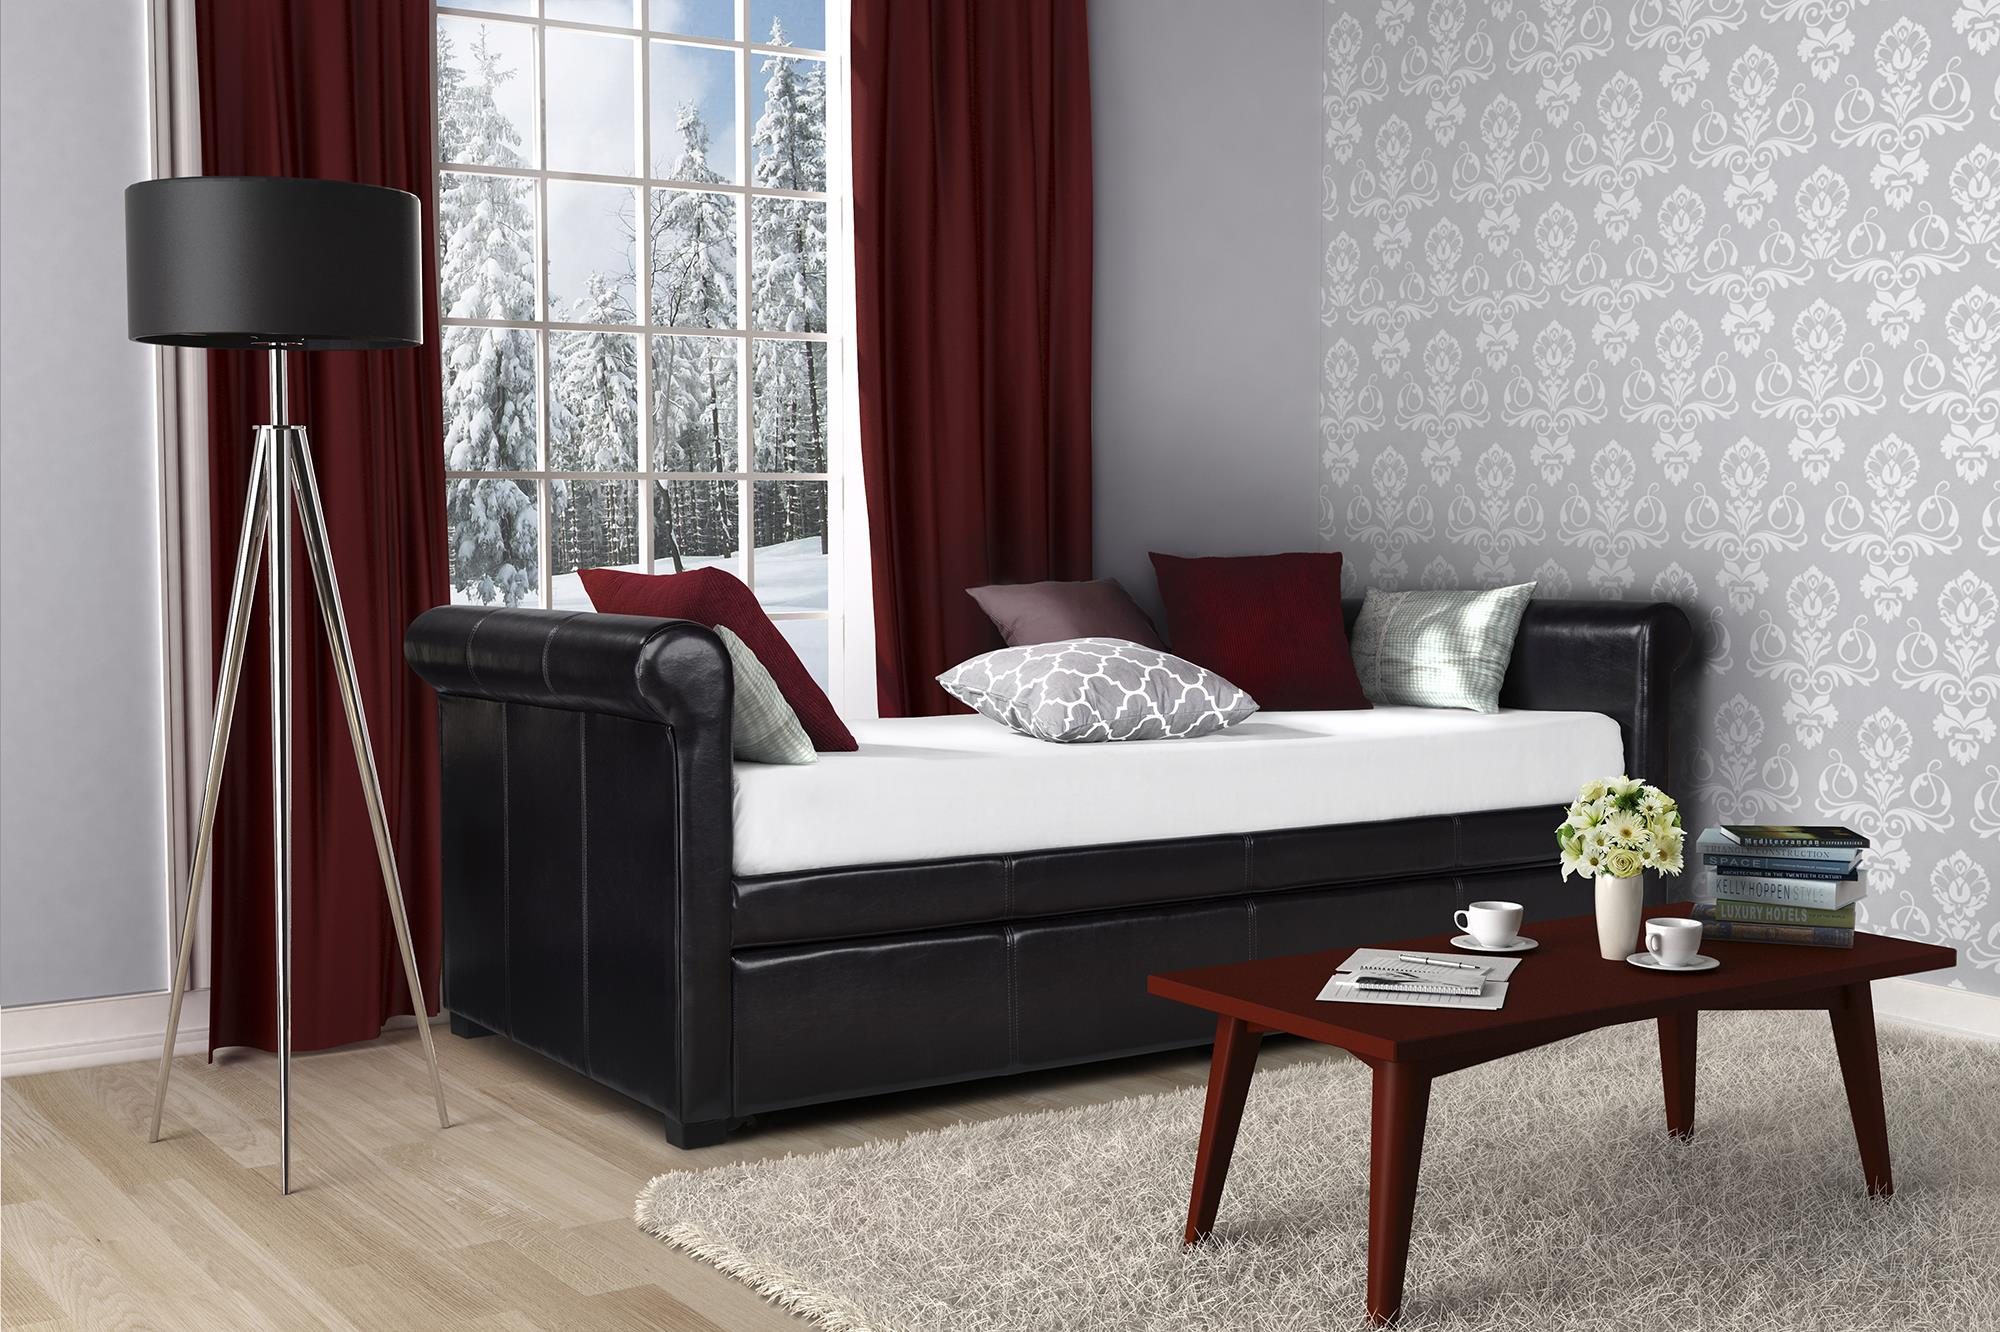 meilleur de canap pour chambre. Black Bedroom Furniture Sets. Home Design Ideas